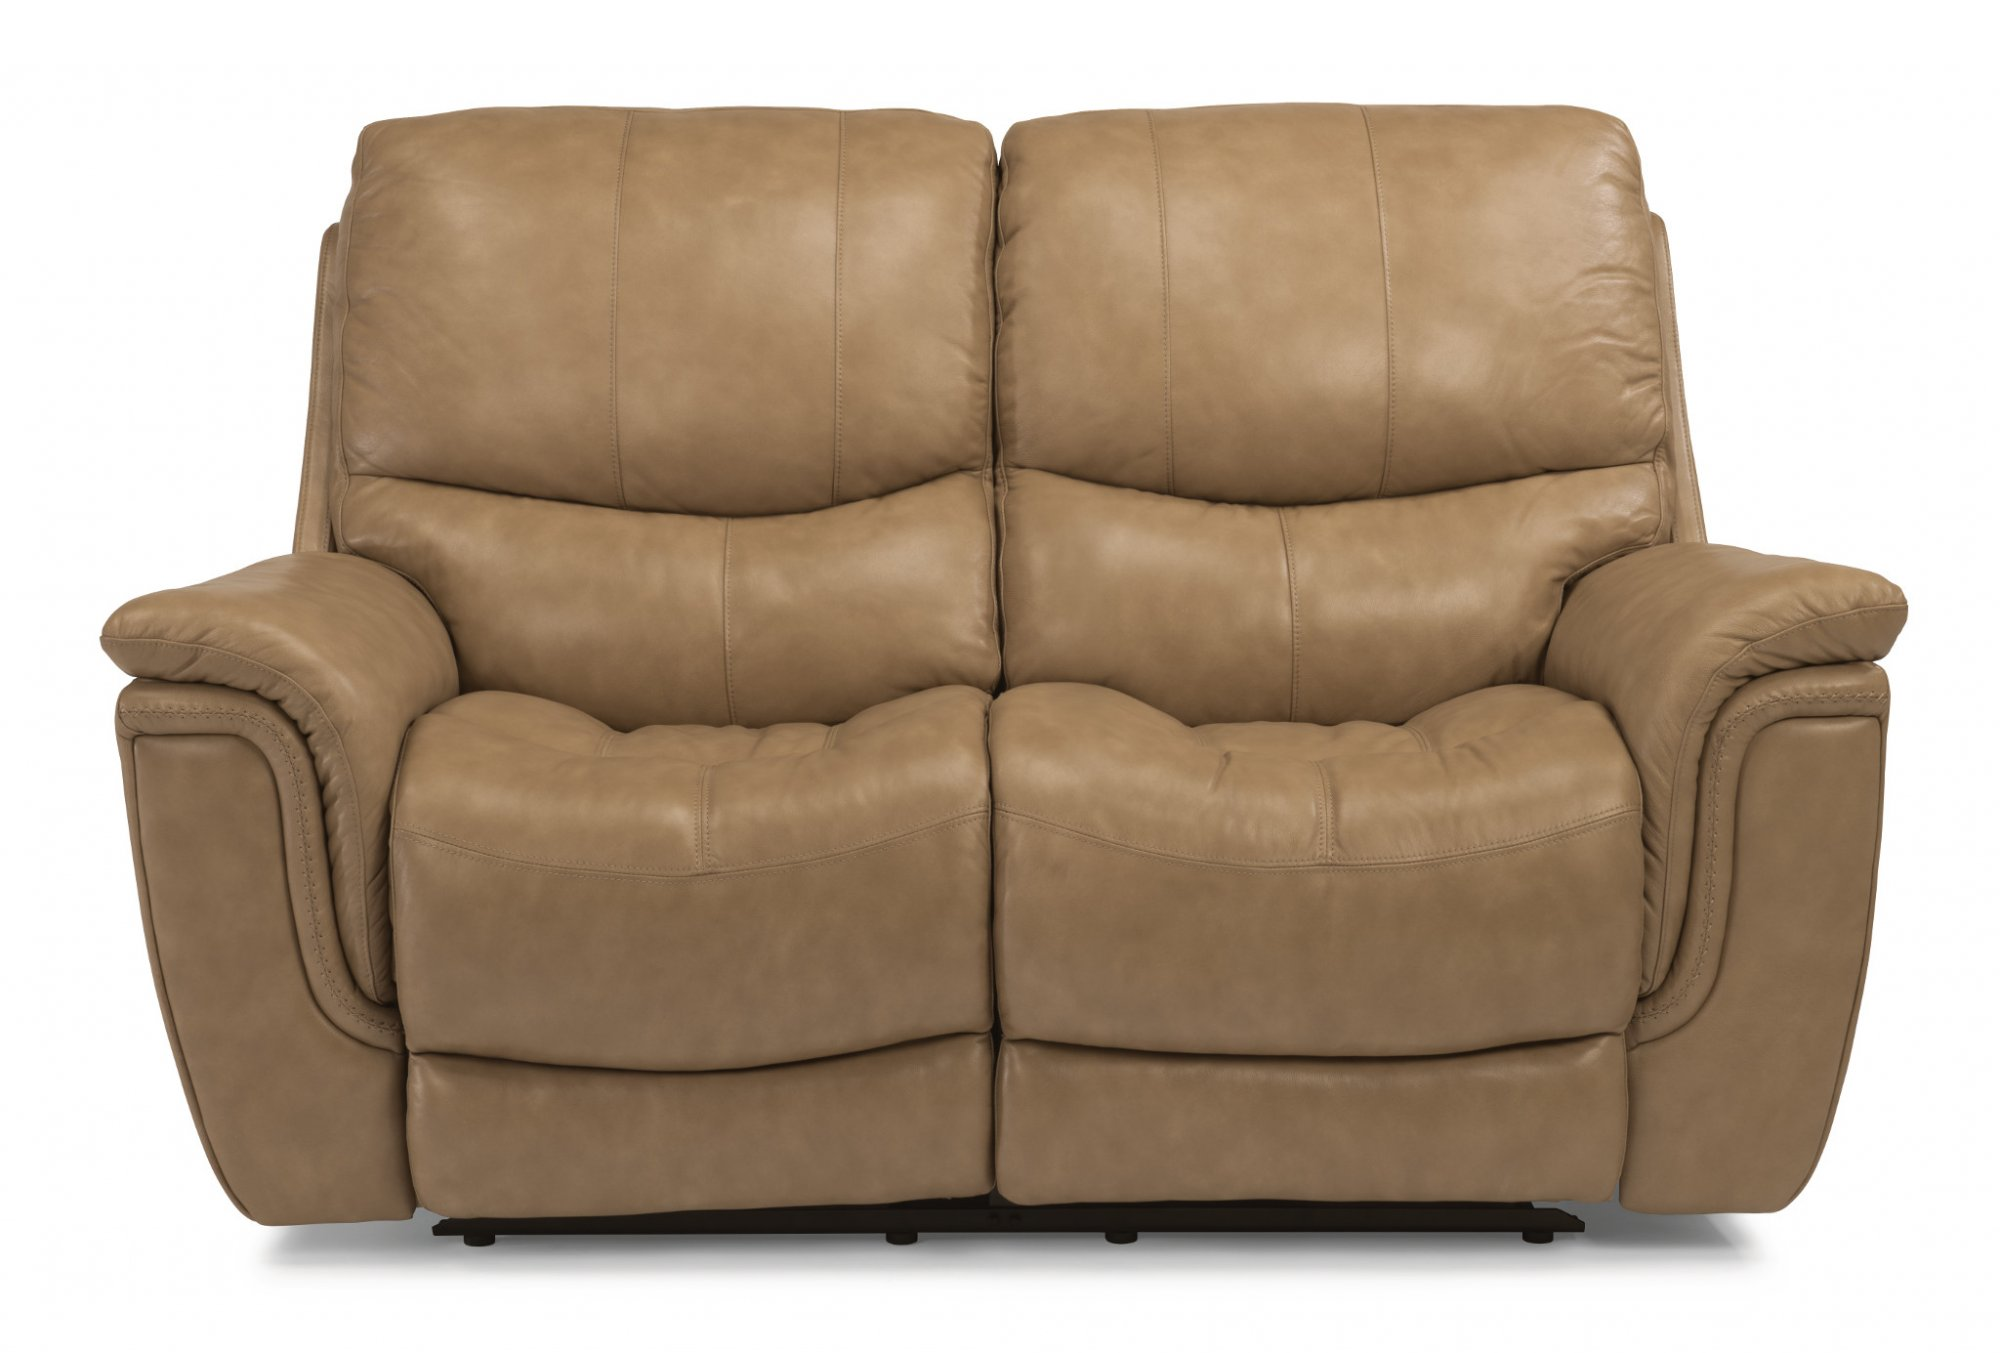 Leather Power Reclining Loveseat  sc 1 st  Flexsteel & Reclining Chairs u0026 Sofas | Reclining Furniture from Flexsteel islam-shia.org